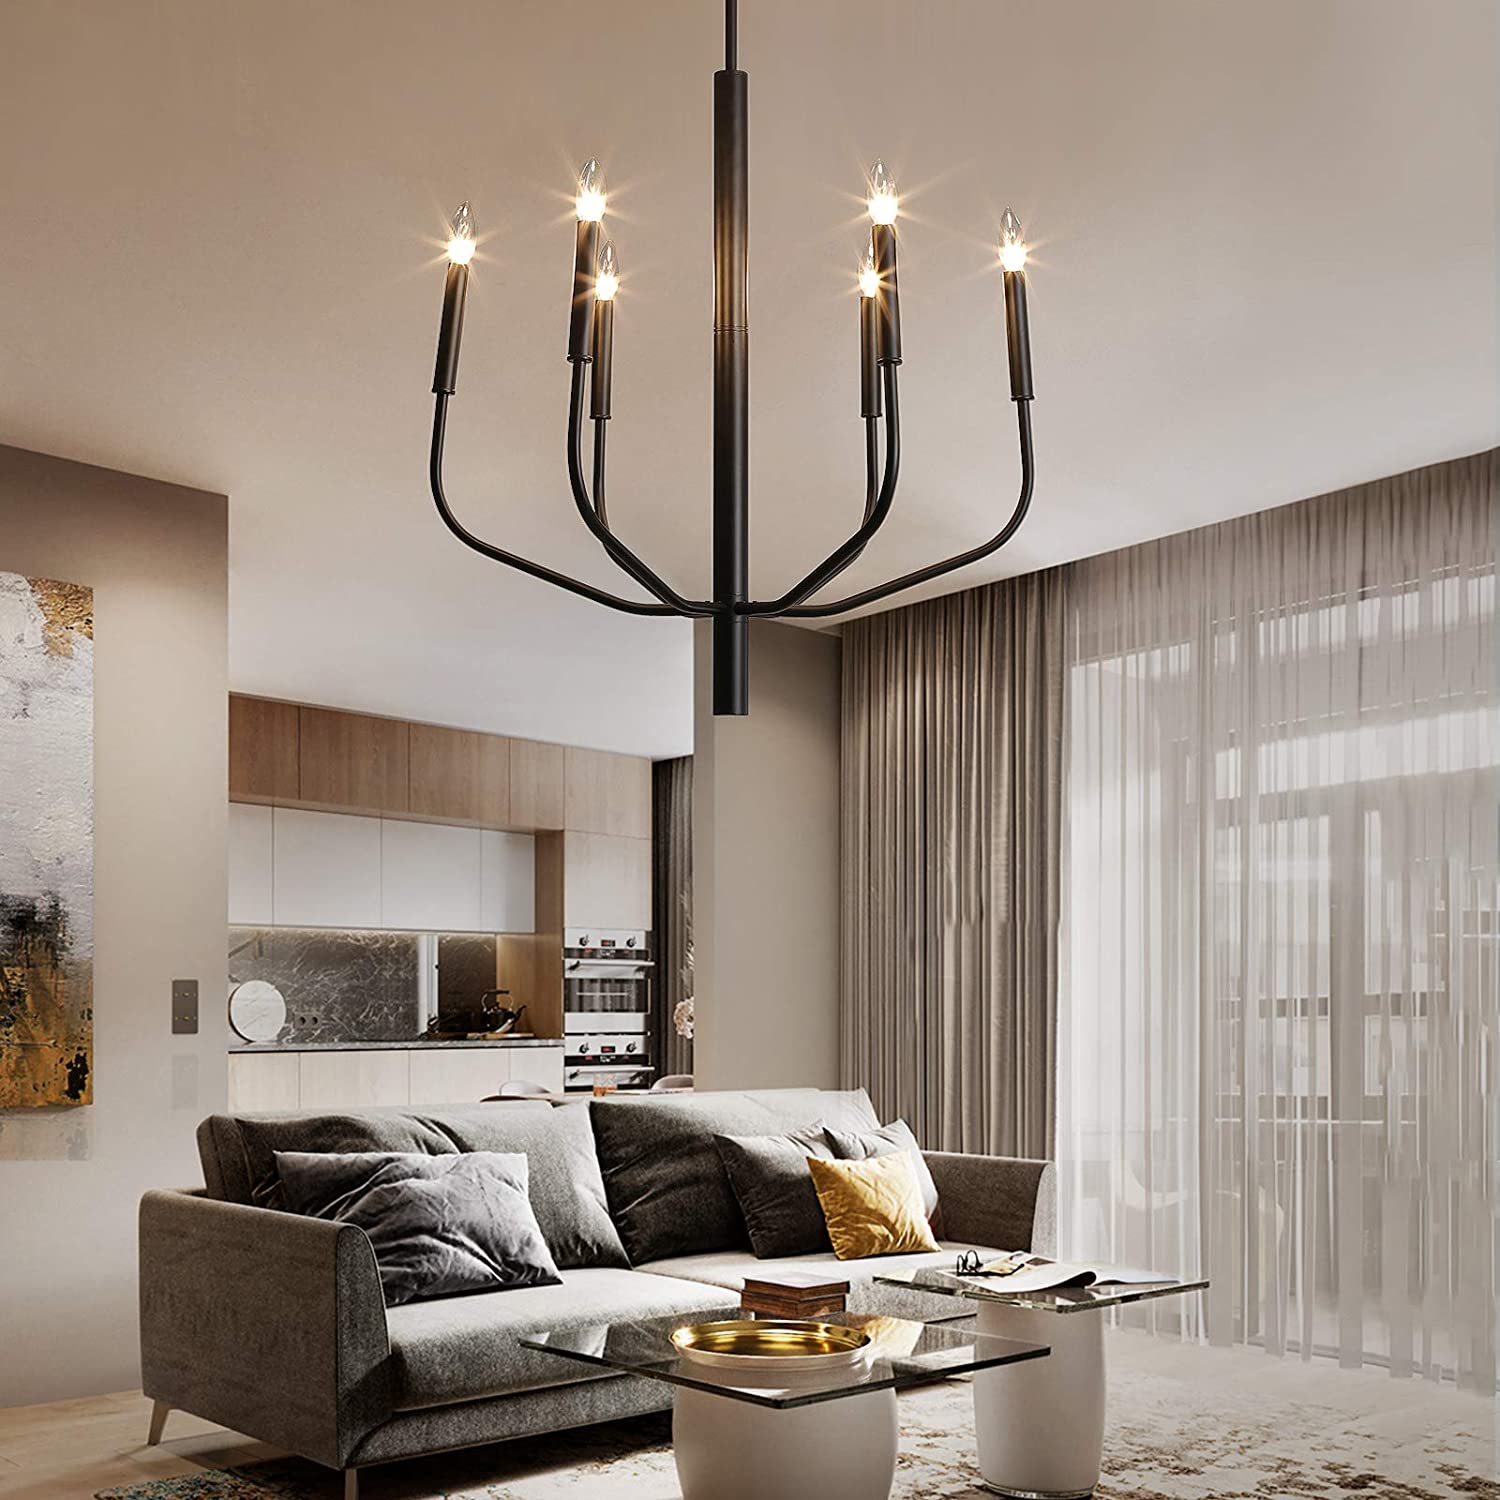 NEWSEE Black Chandelier 6-Light Farmhouse Light Fixture 67% OFF of fixed price Outlet ☆ Free Shipping I Rustic